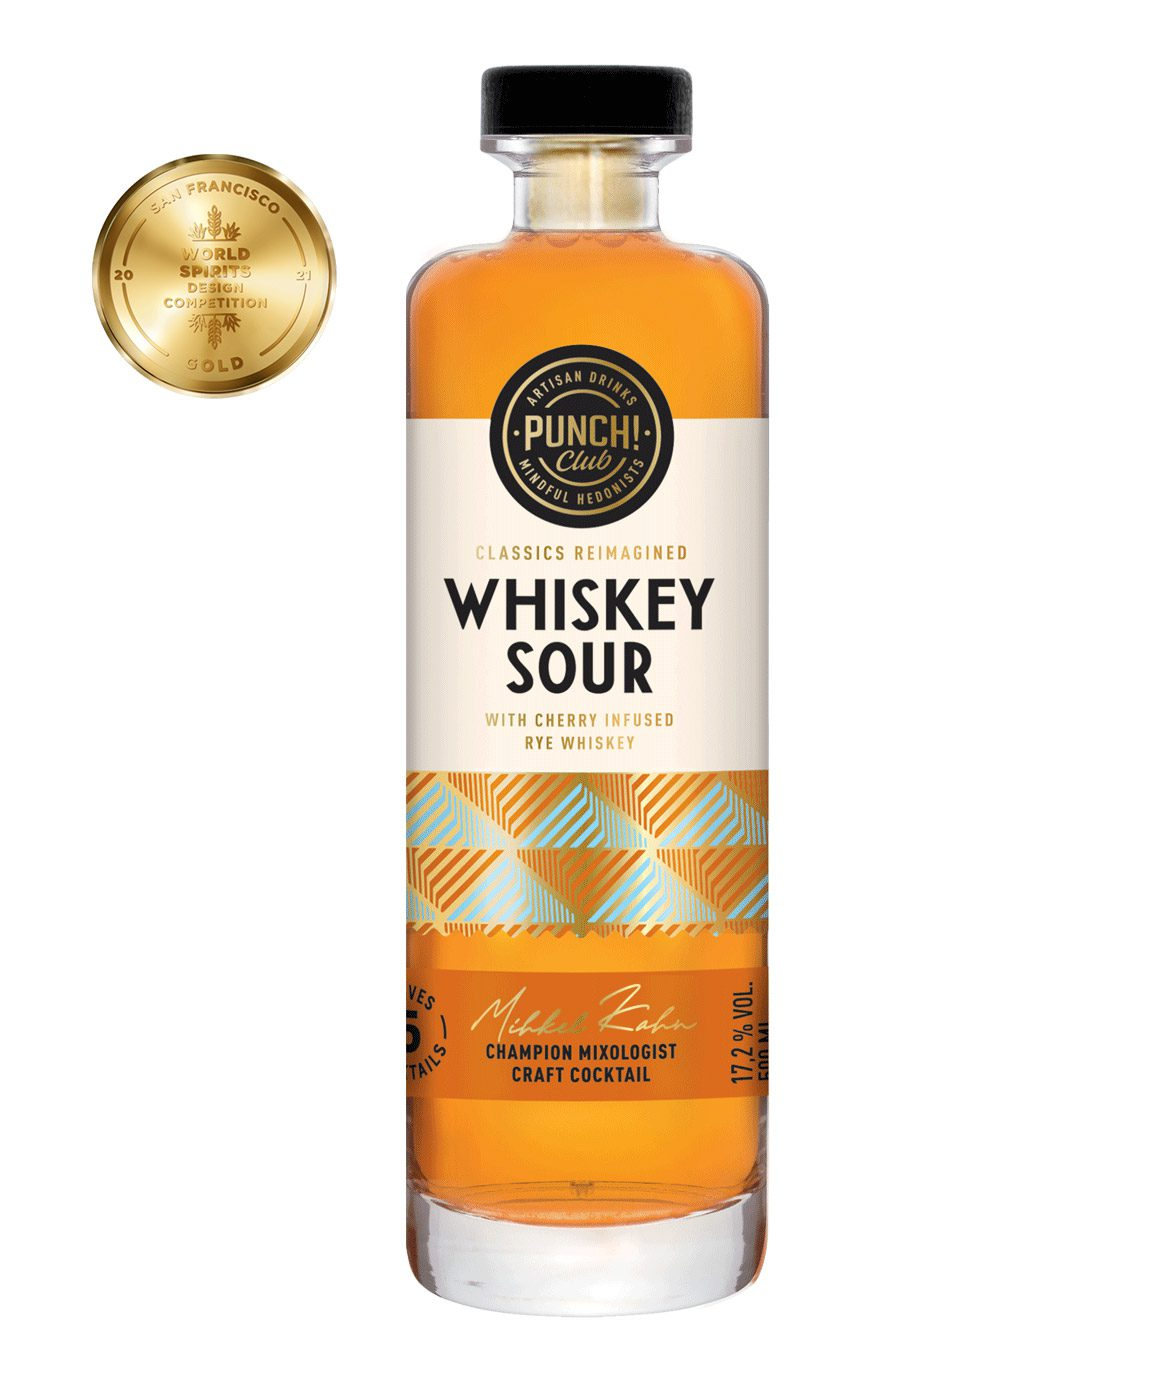 Classics Reimagined: Whiskey Sour by Punch Club. Award winning whiskey cocktail